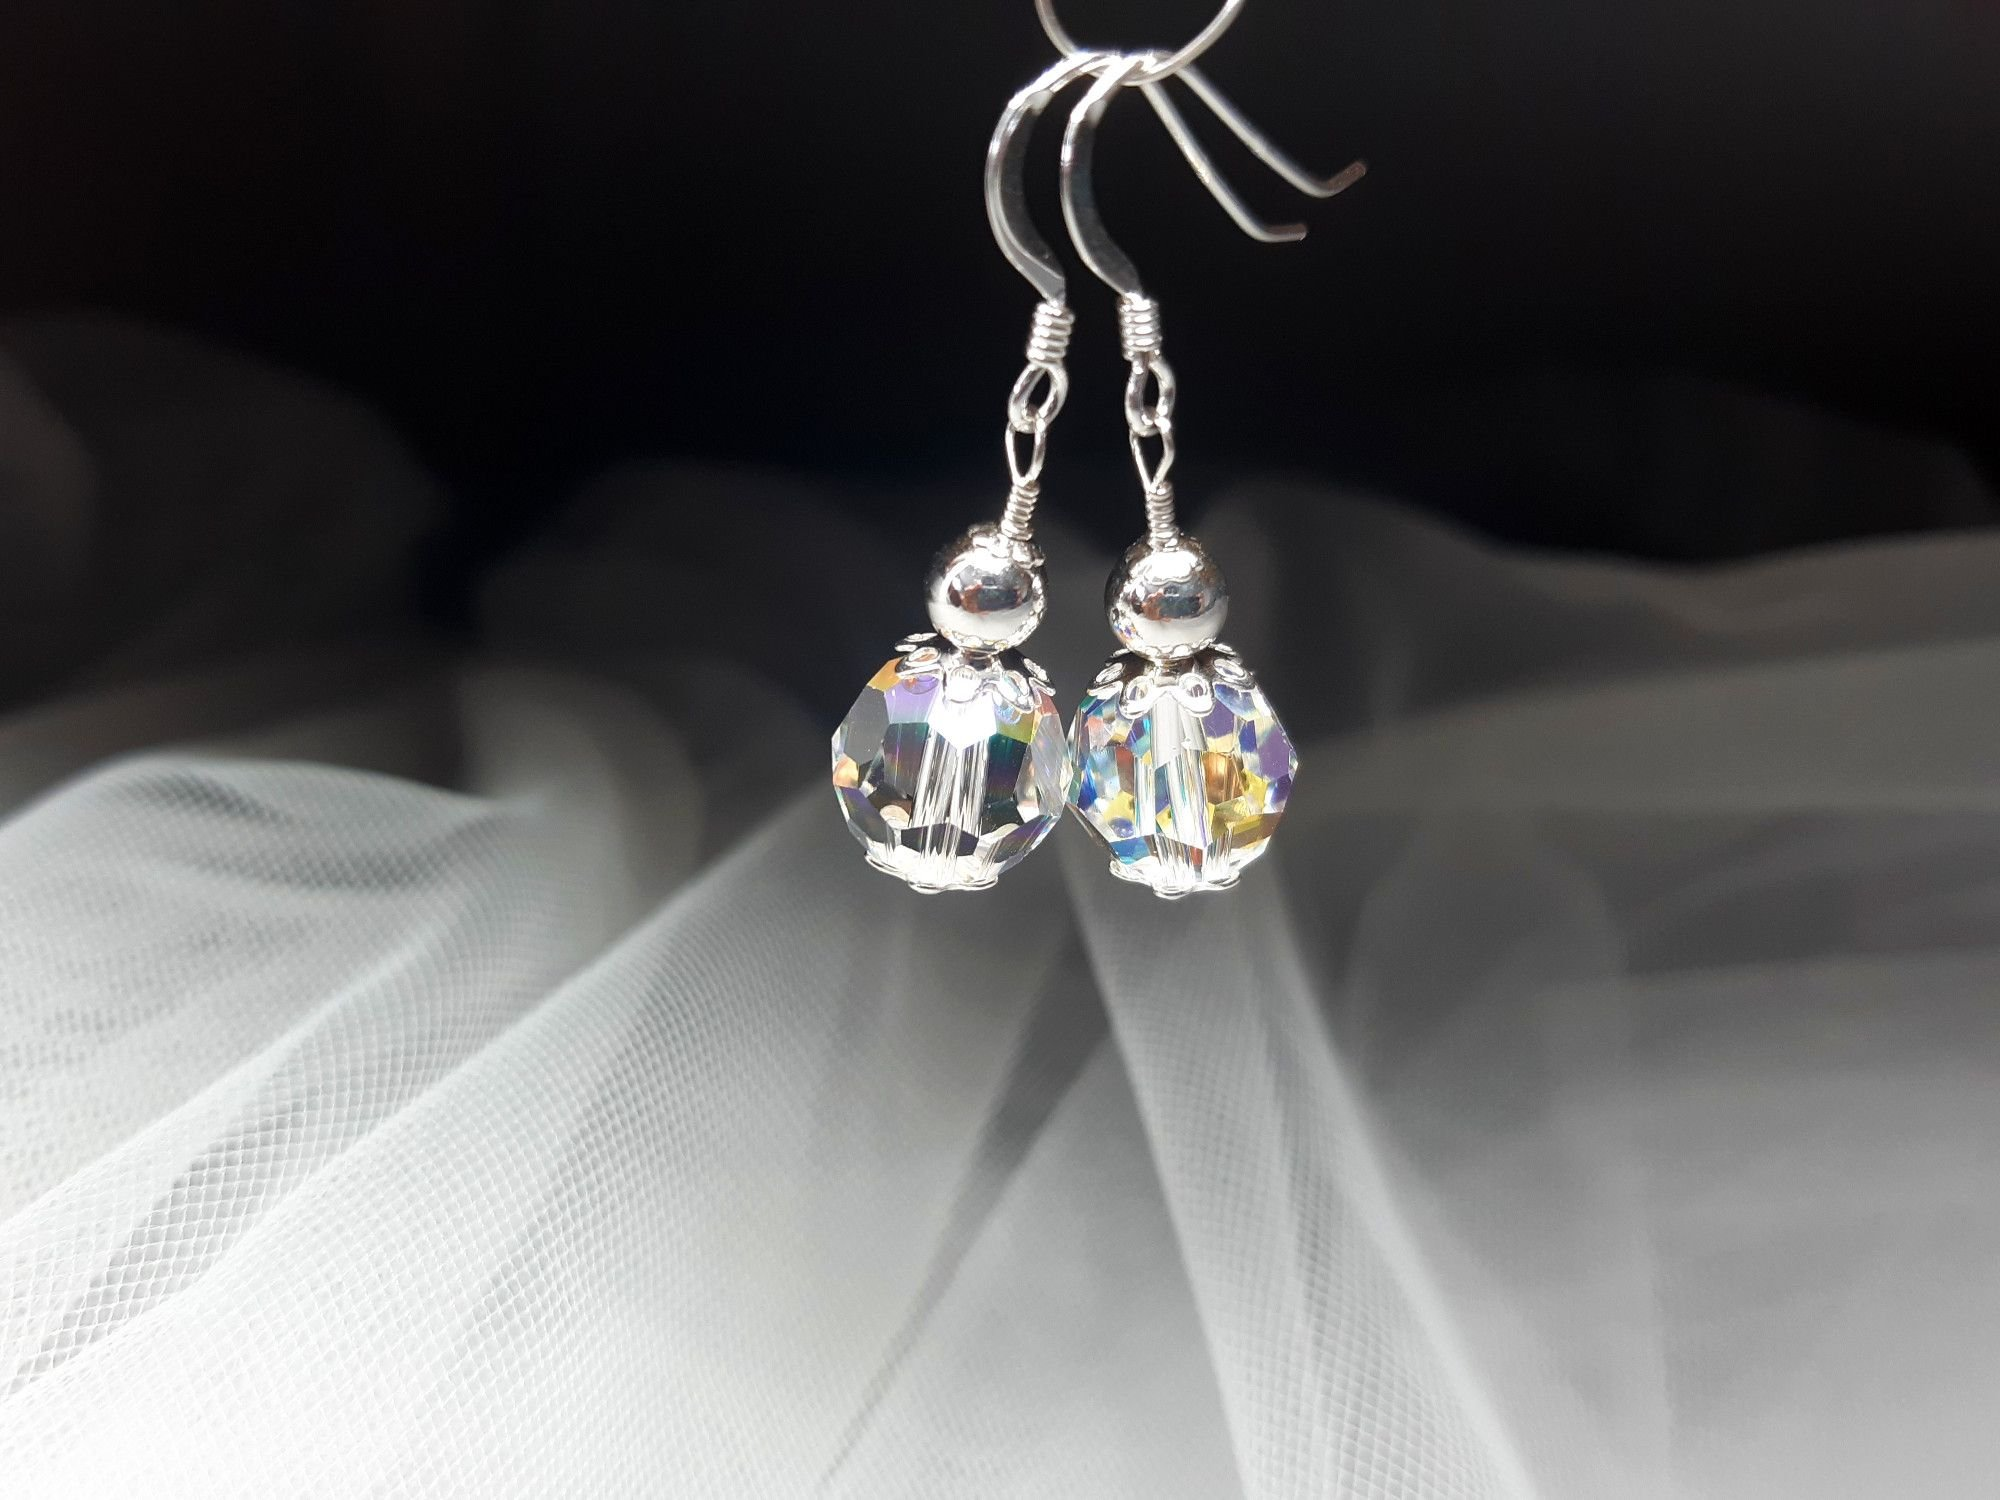 Occasion-bridal-earrings with swarovski crystal+sterling silver-3.jpg